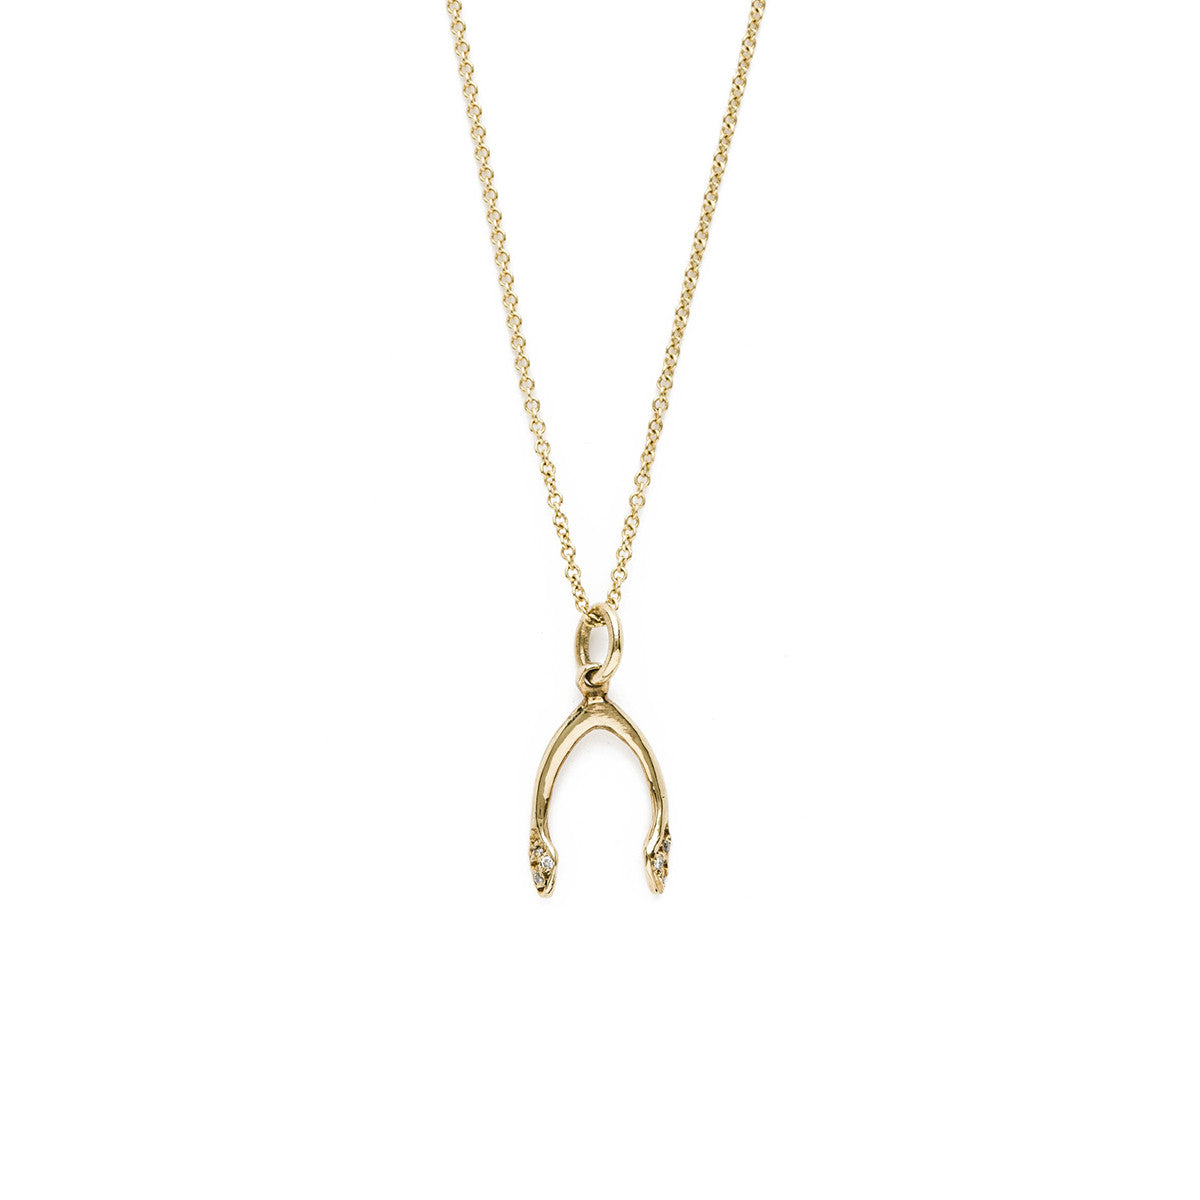 Lena wald 14k gold or silver wishbone necklace iconery wishbone necklace wishbone necklace aloadofball Image collections